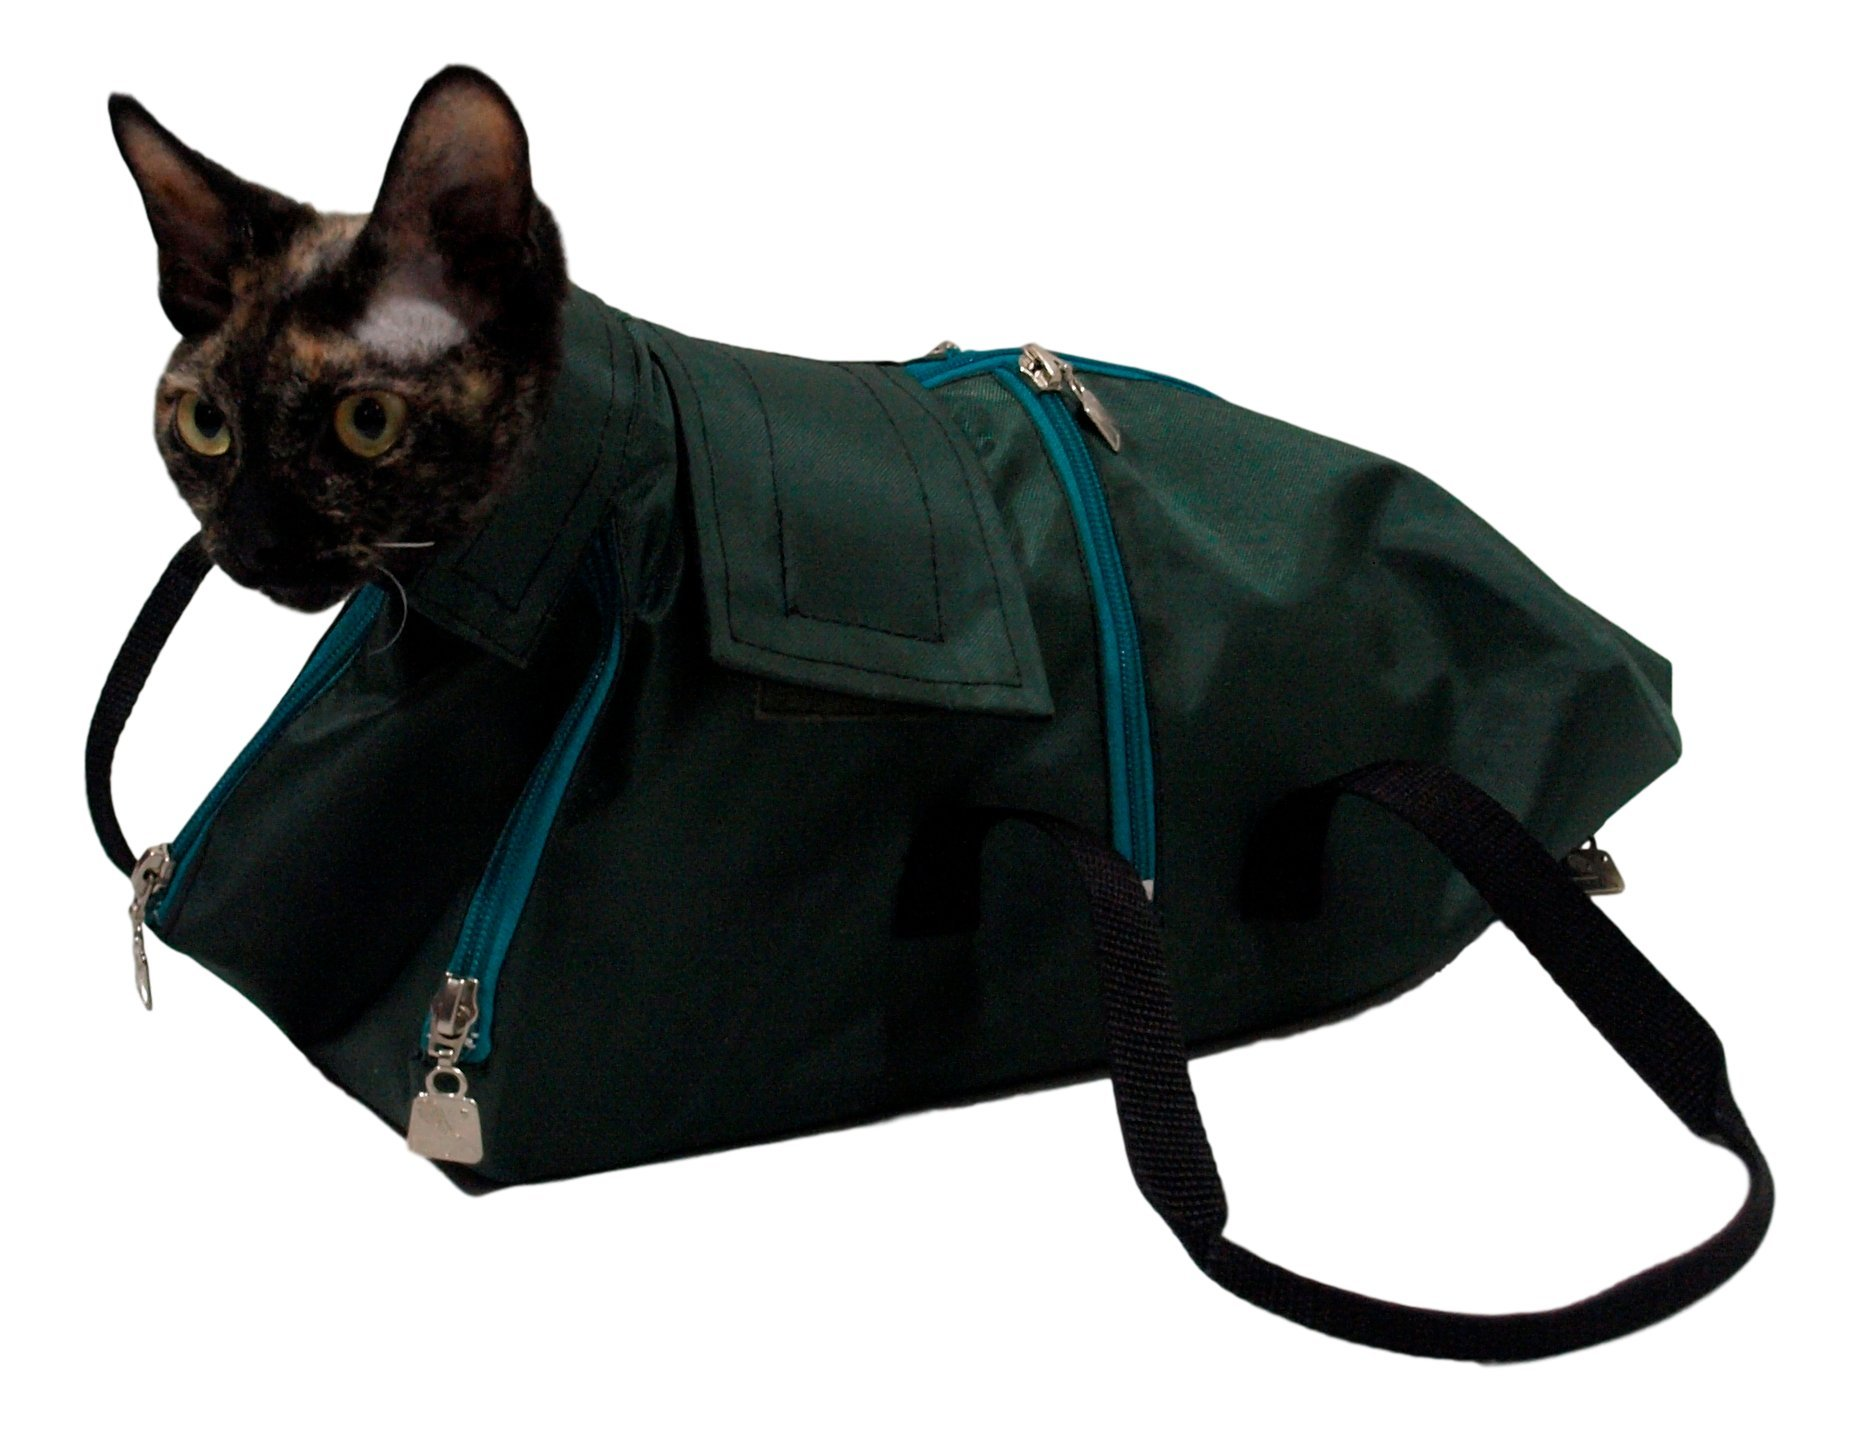 After Surgery Wear Premium Cat Restraint Bag, Cat Grooming Bag, Cat Carrier Bag. Made in Europe Using The Fabrics. (Medium) by After Surgery Wear